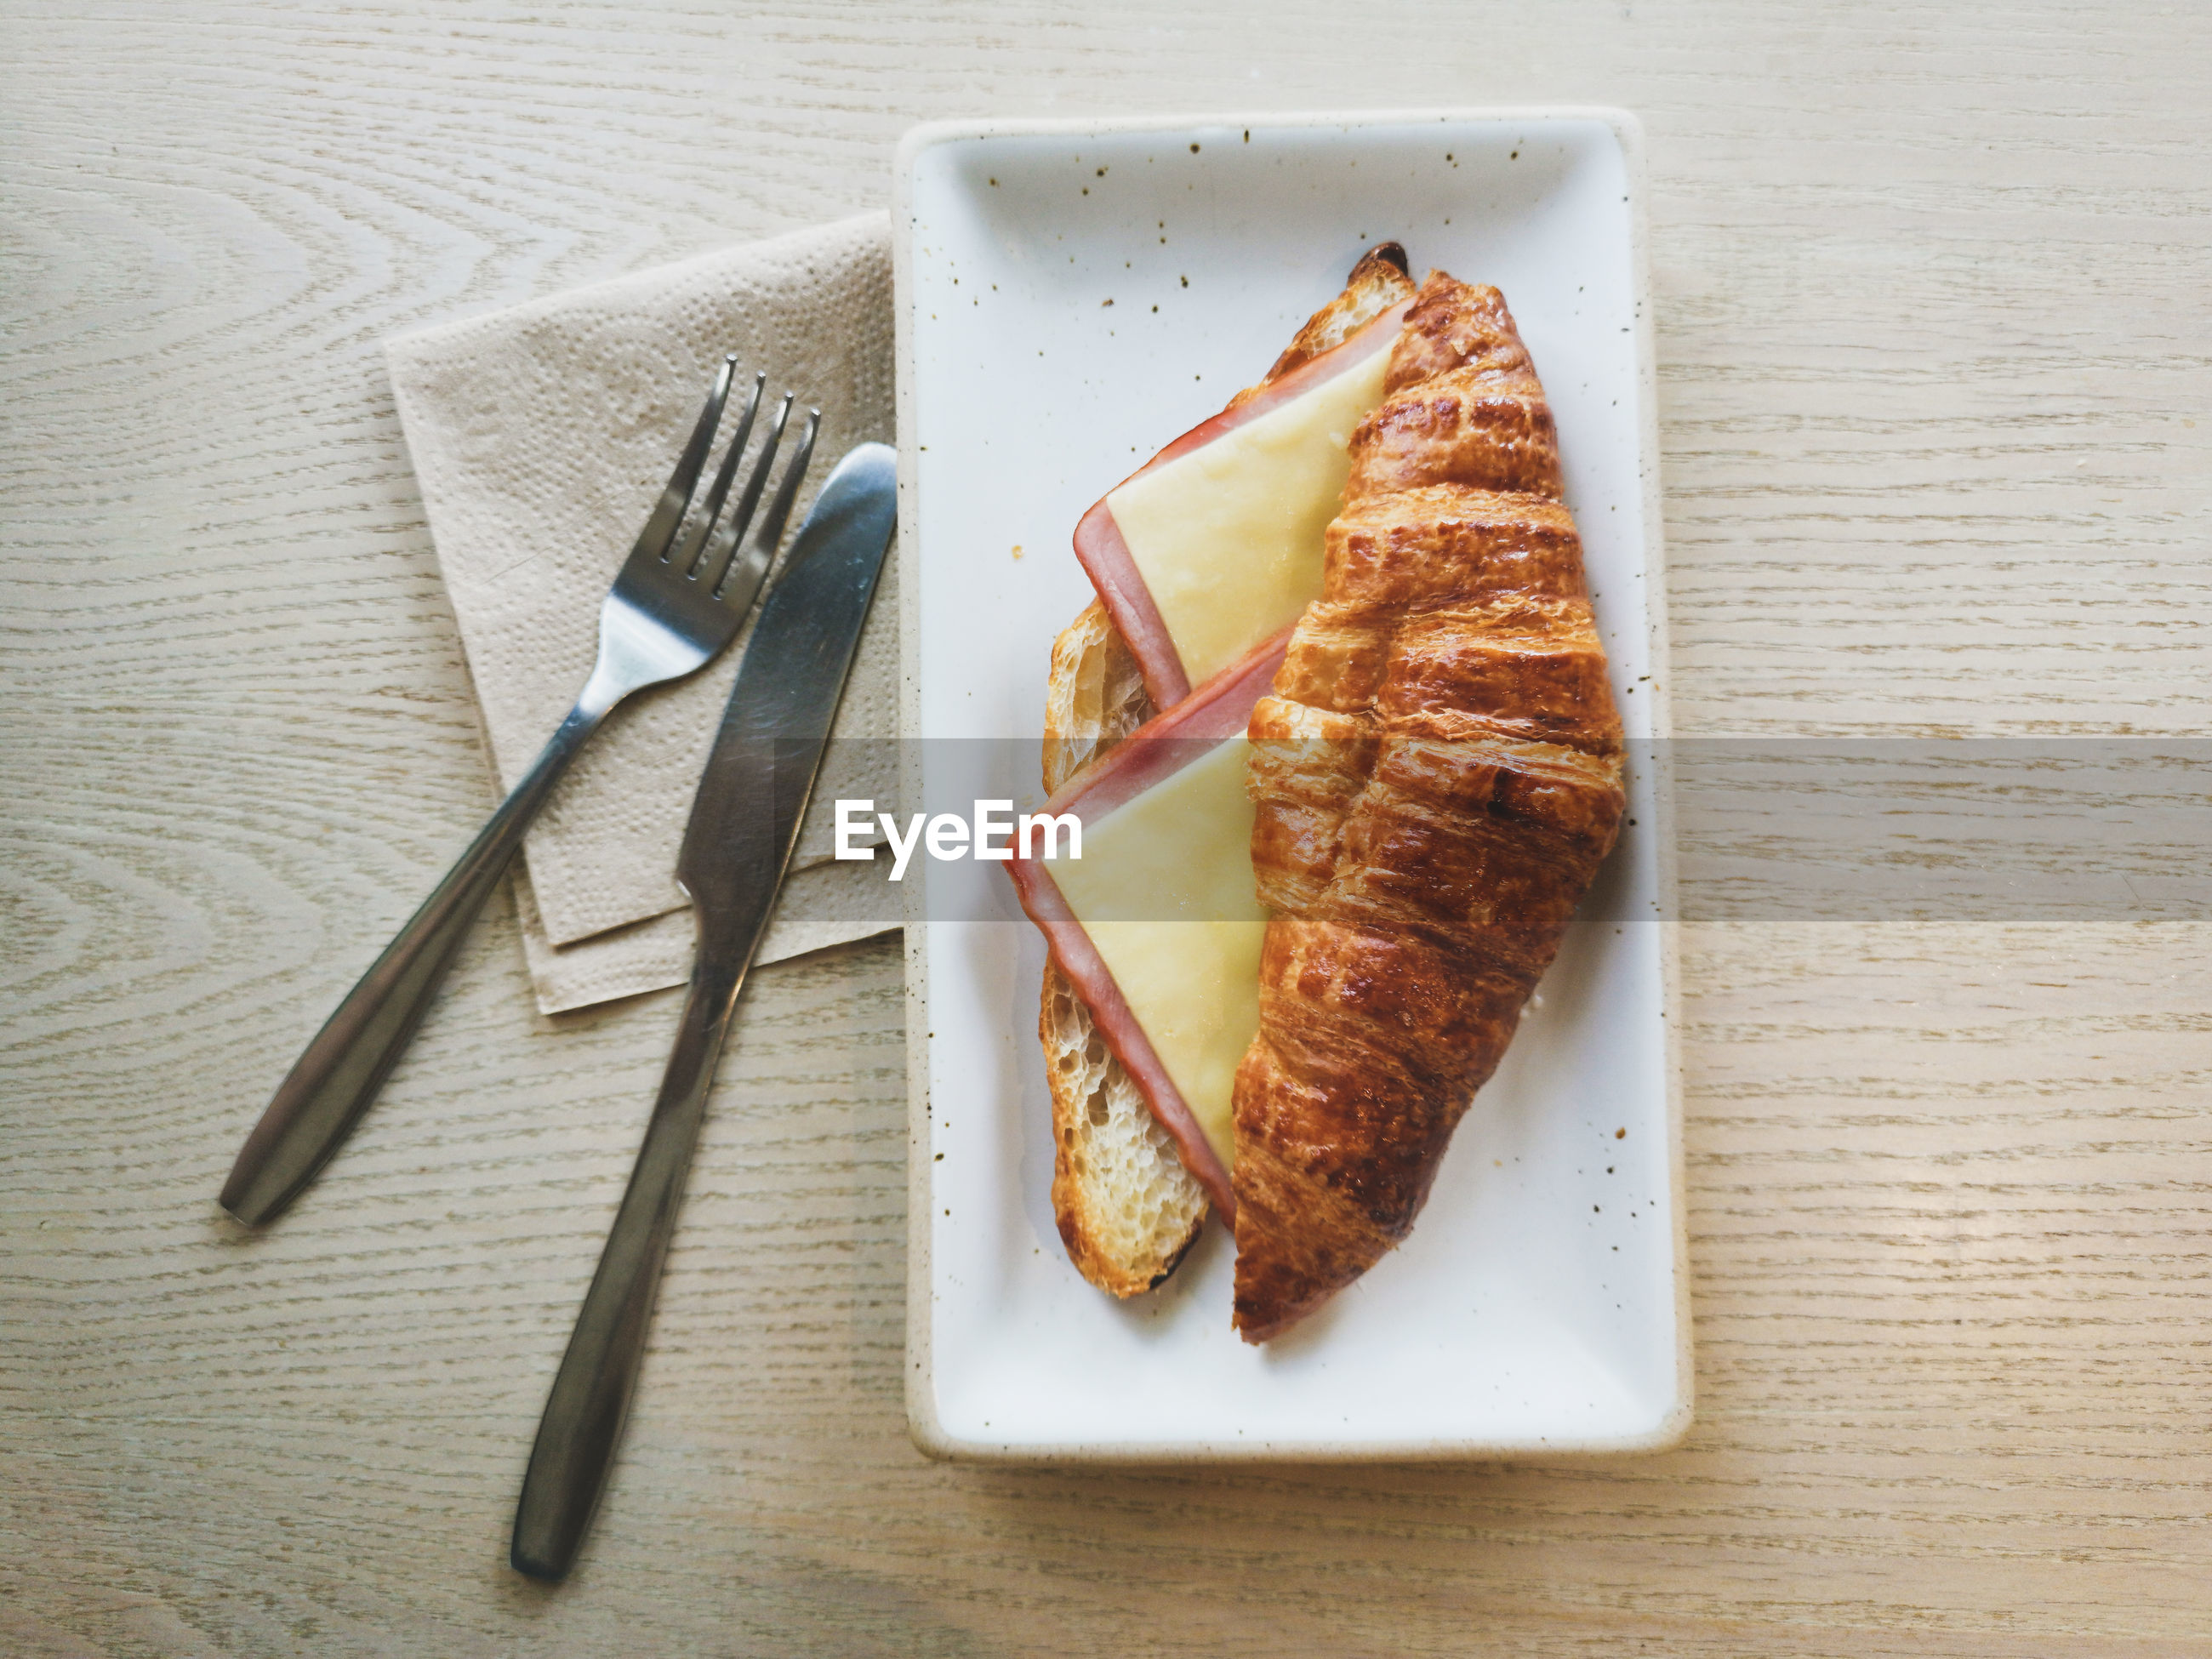 Croissant sandwich ham cheese on wooden table and fork knife